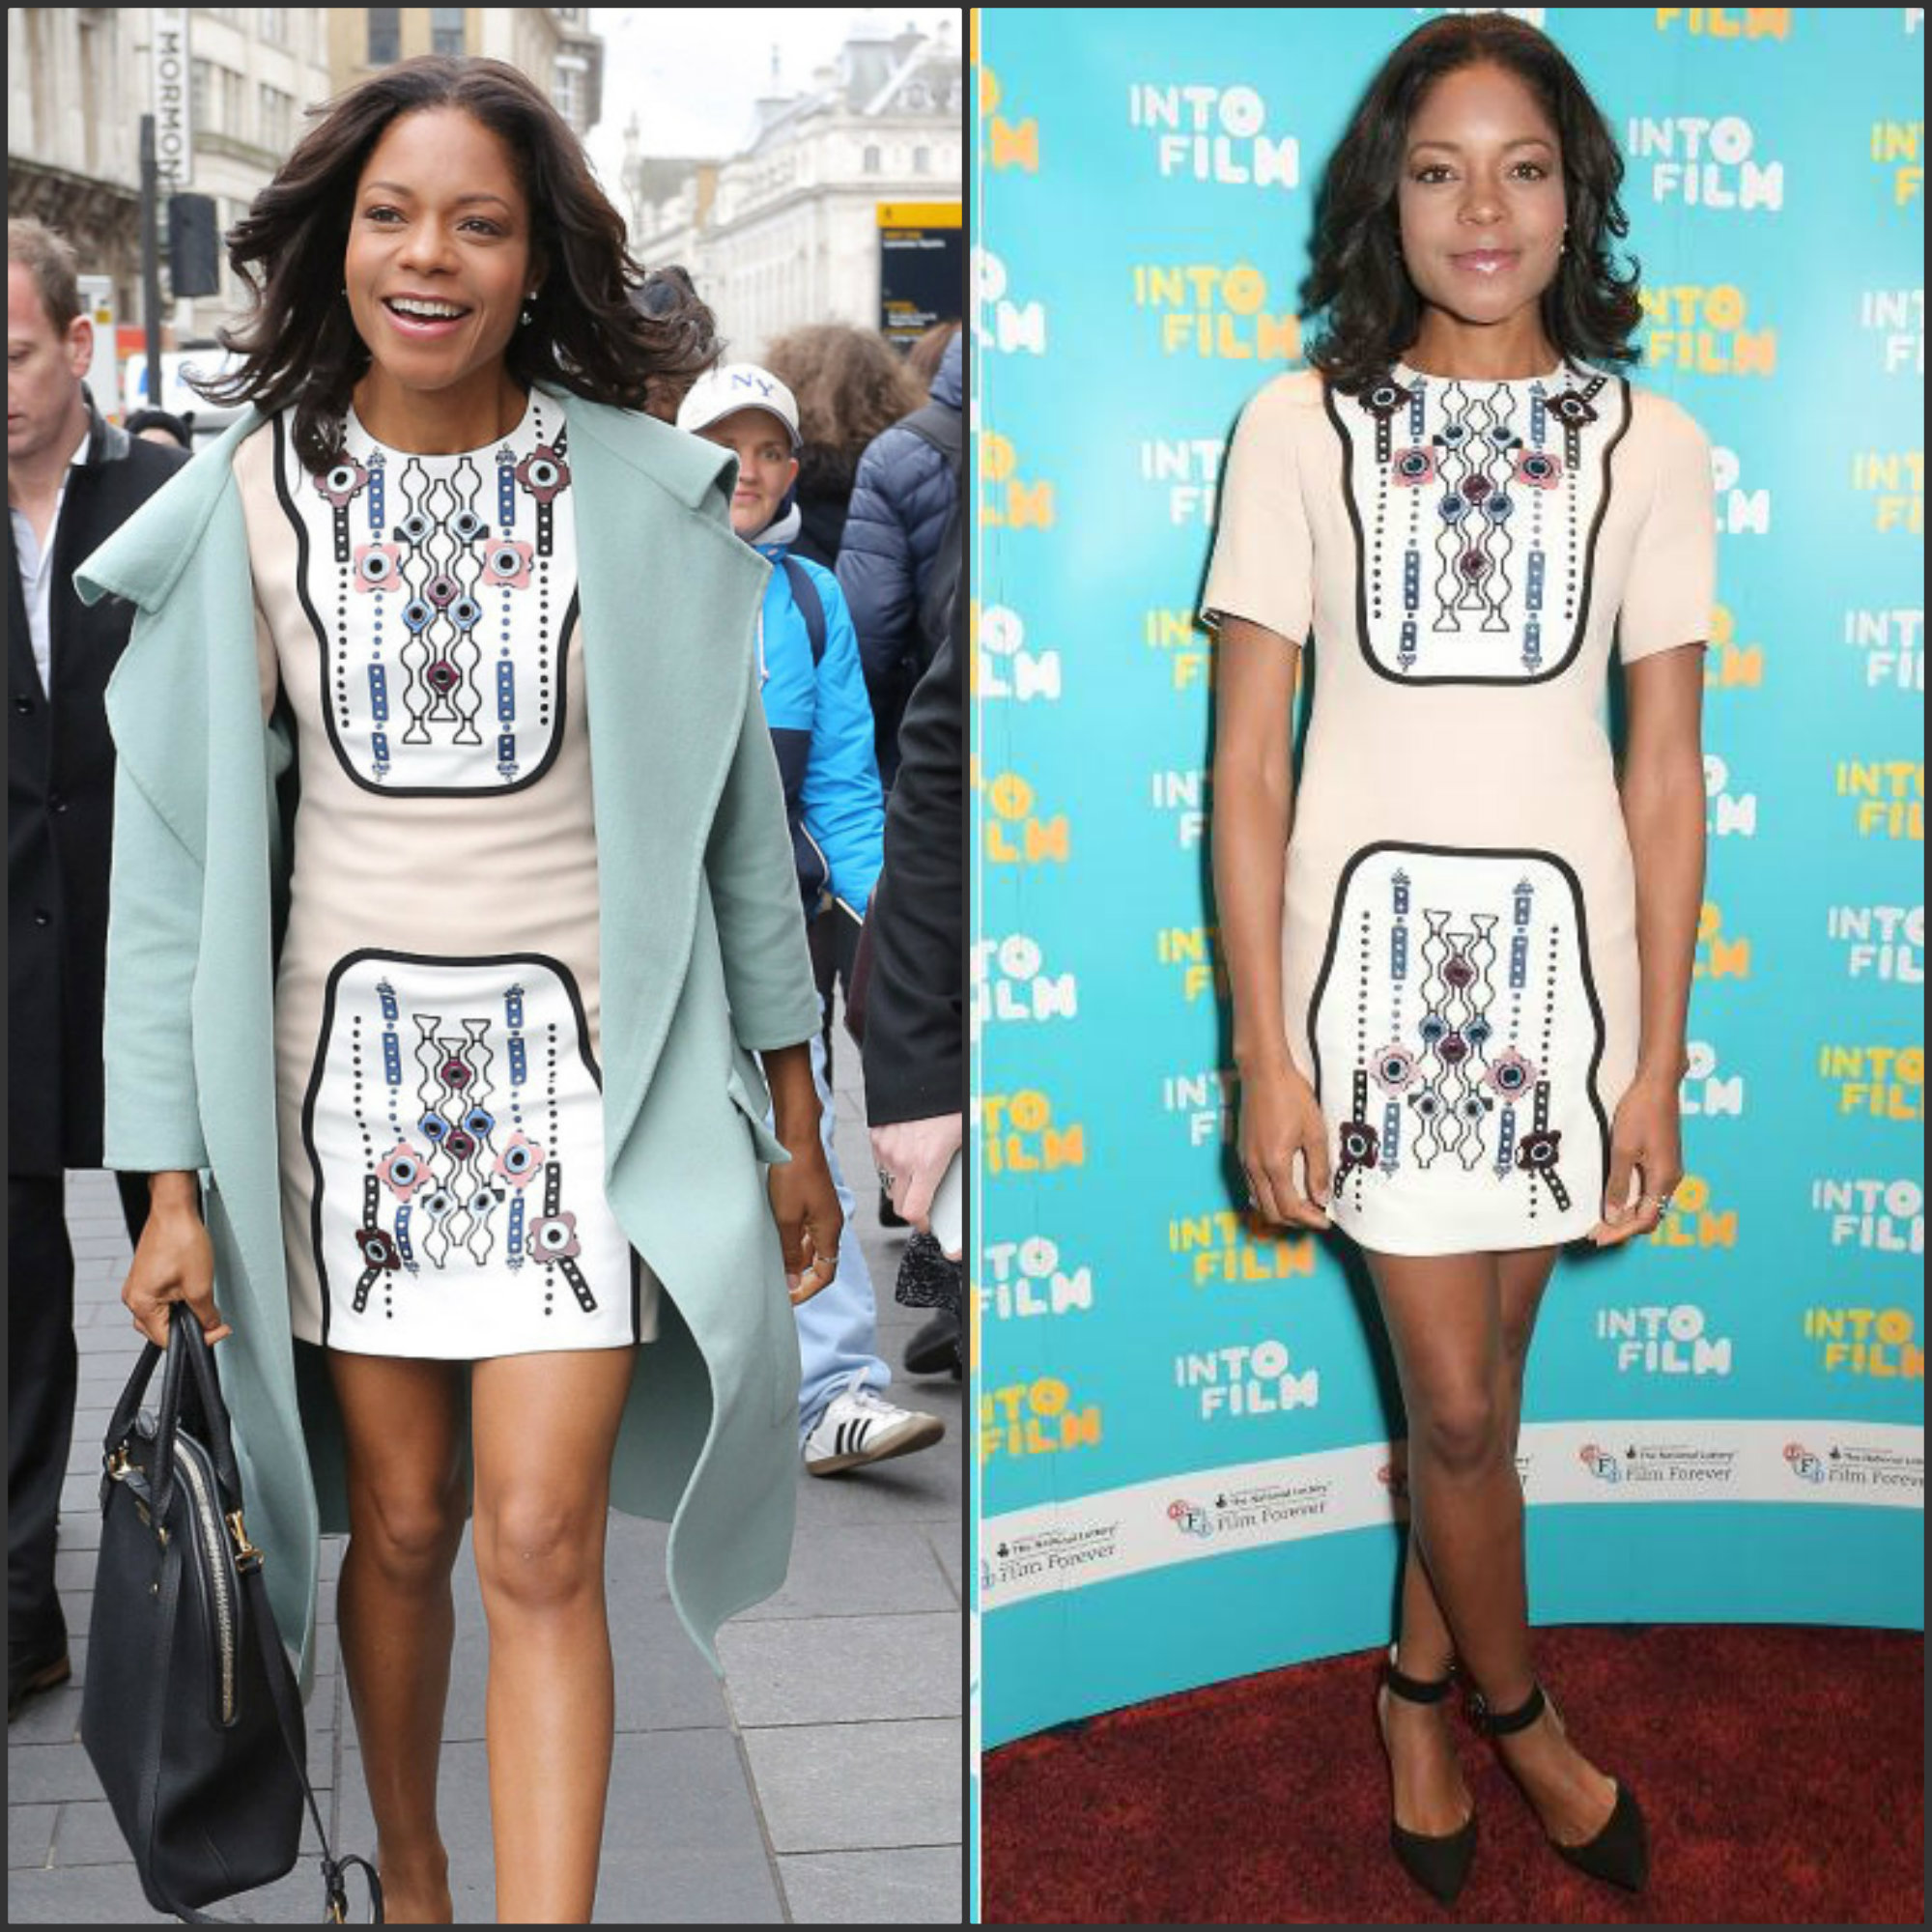 Naomie-Harris-in-Peter-Pilotto-at-the-Into-Film-Awards